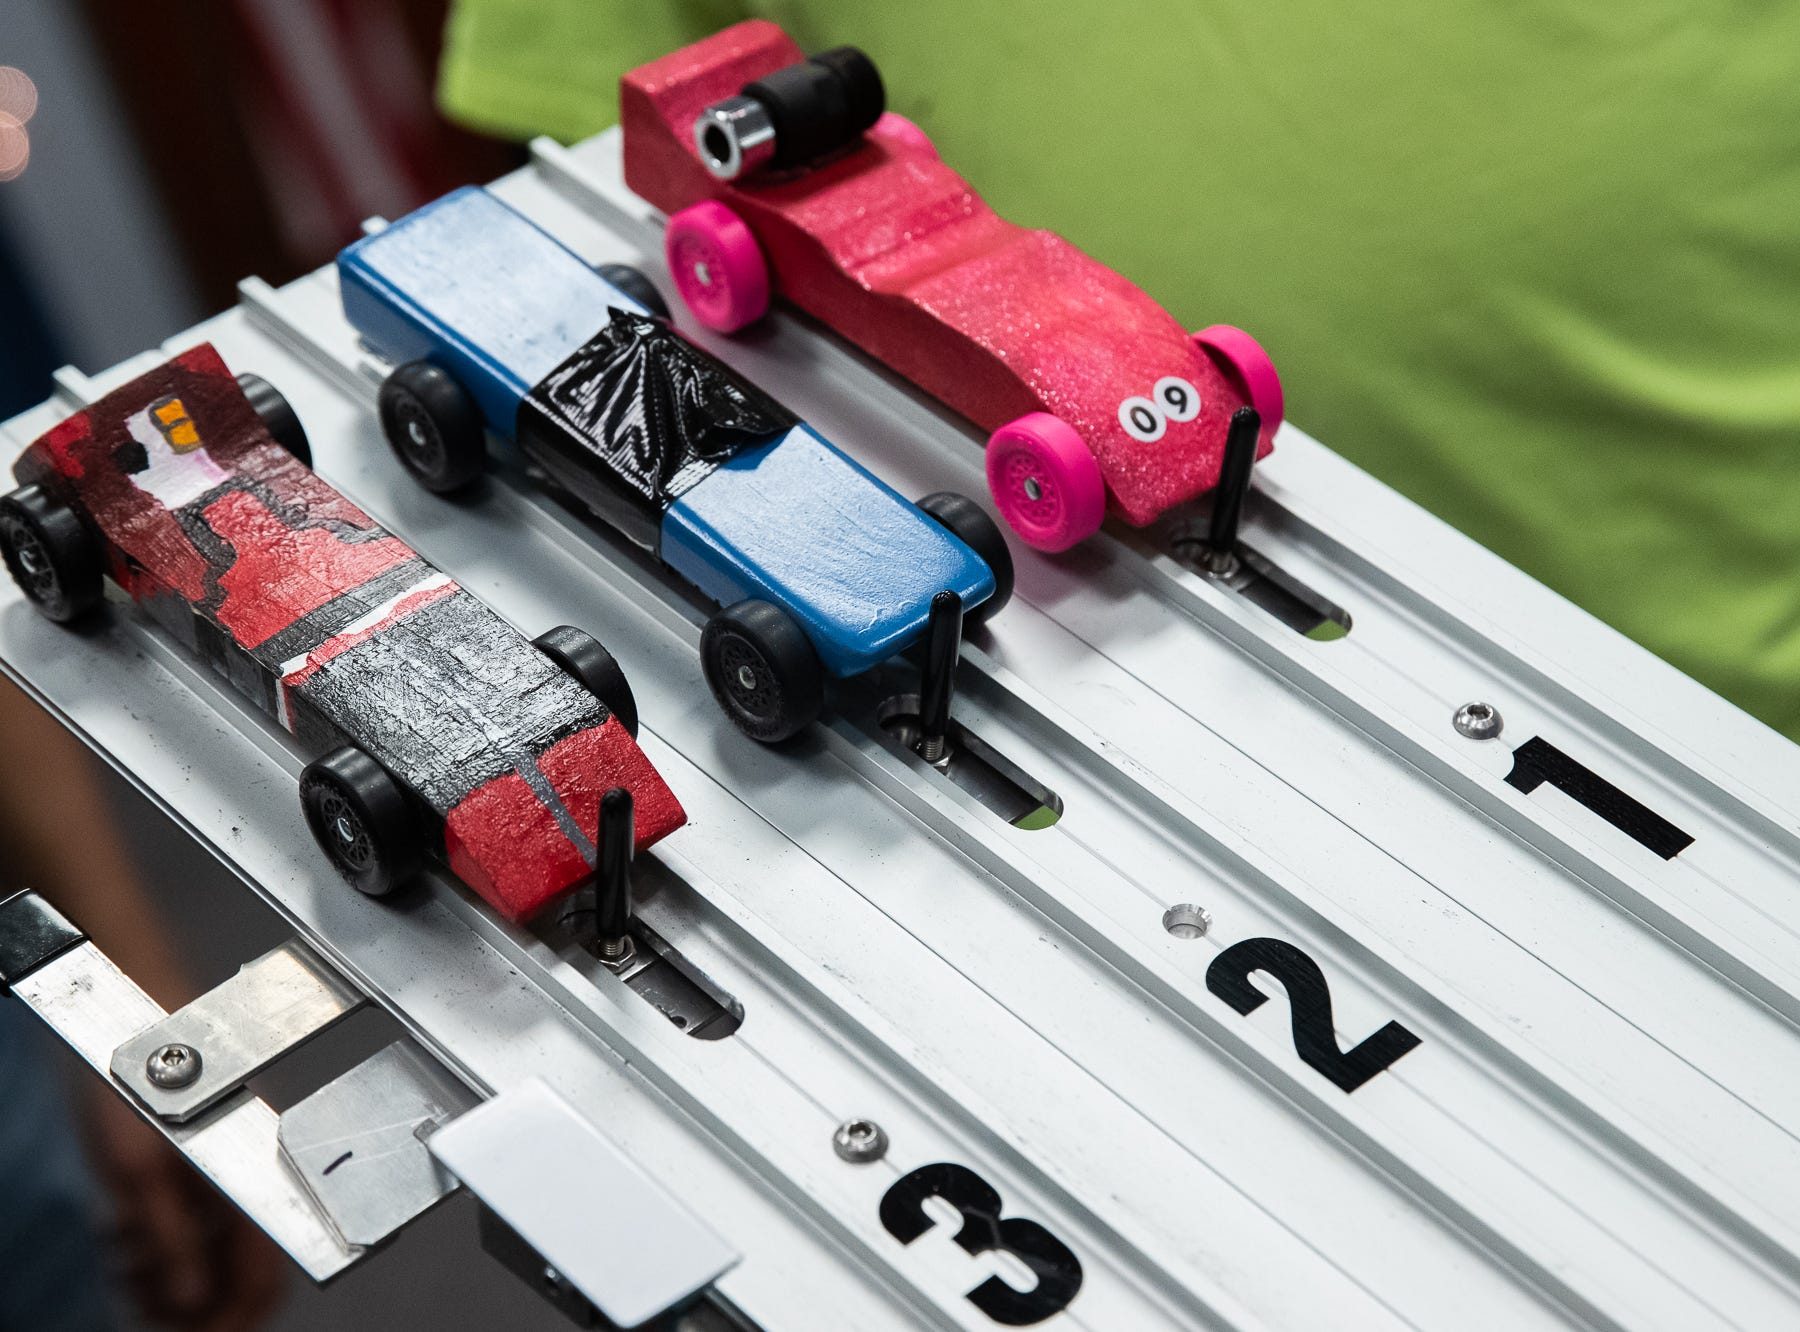 Cars are prepared to be raced during the cub scouts pack 127 Pinewood Derby event at Lincoln Intermediate Unit 12, Sunday, Feb. 10 in New Oxford. The scouts had a month to design their custom pinewood cars to race in the event.